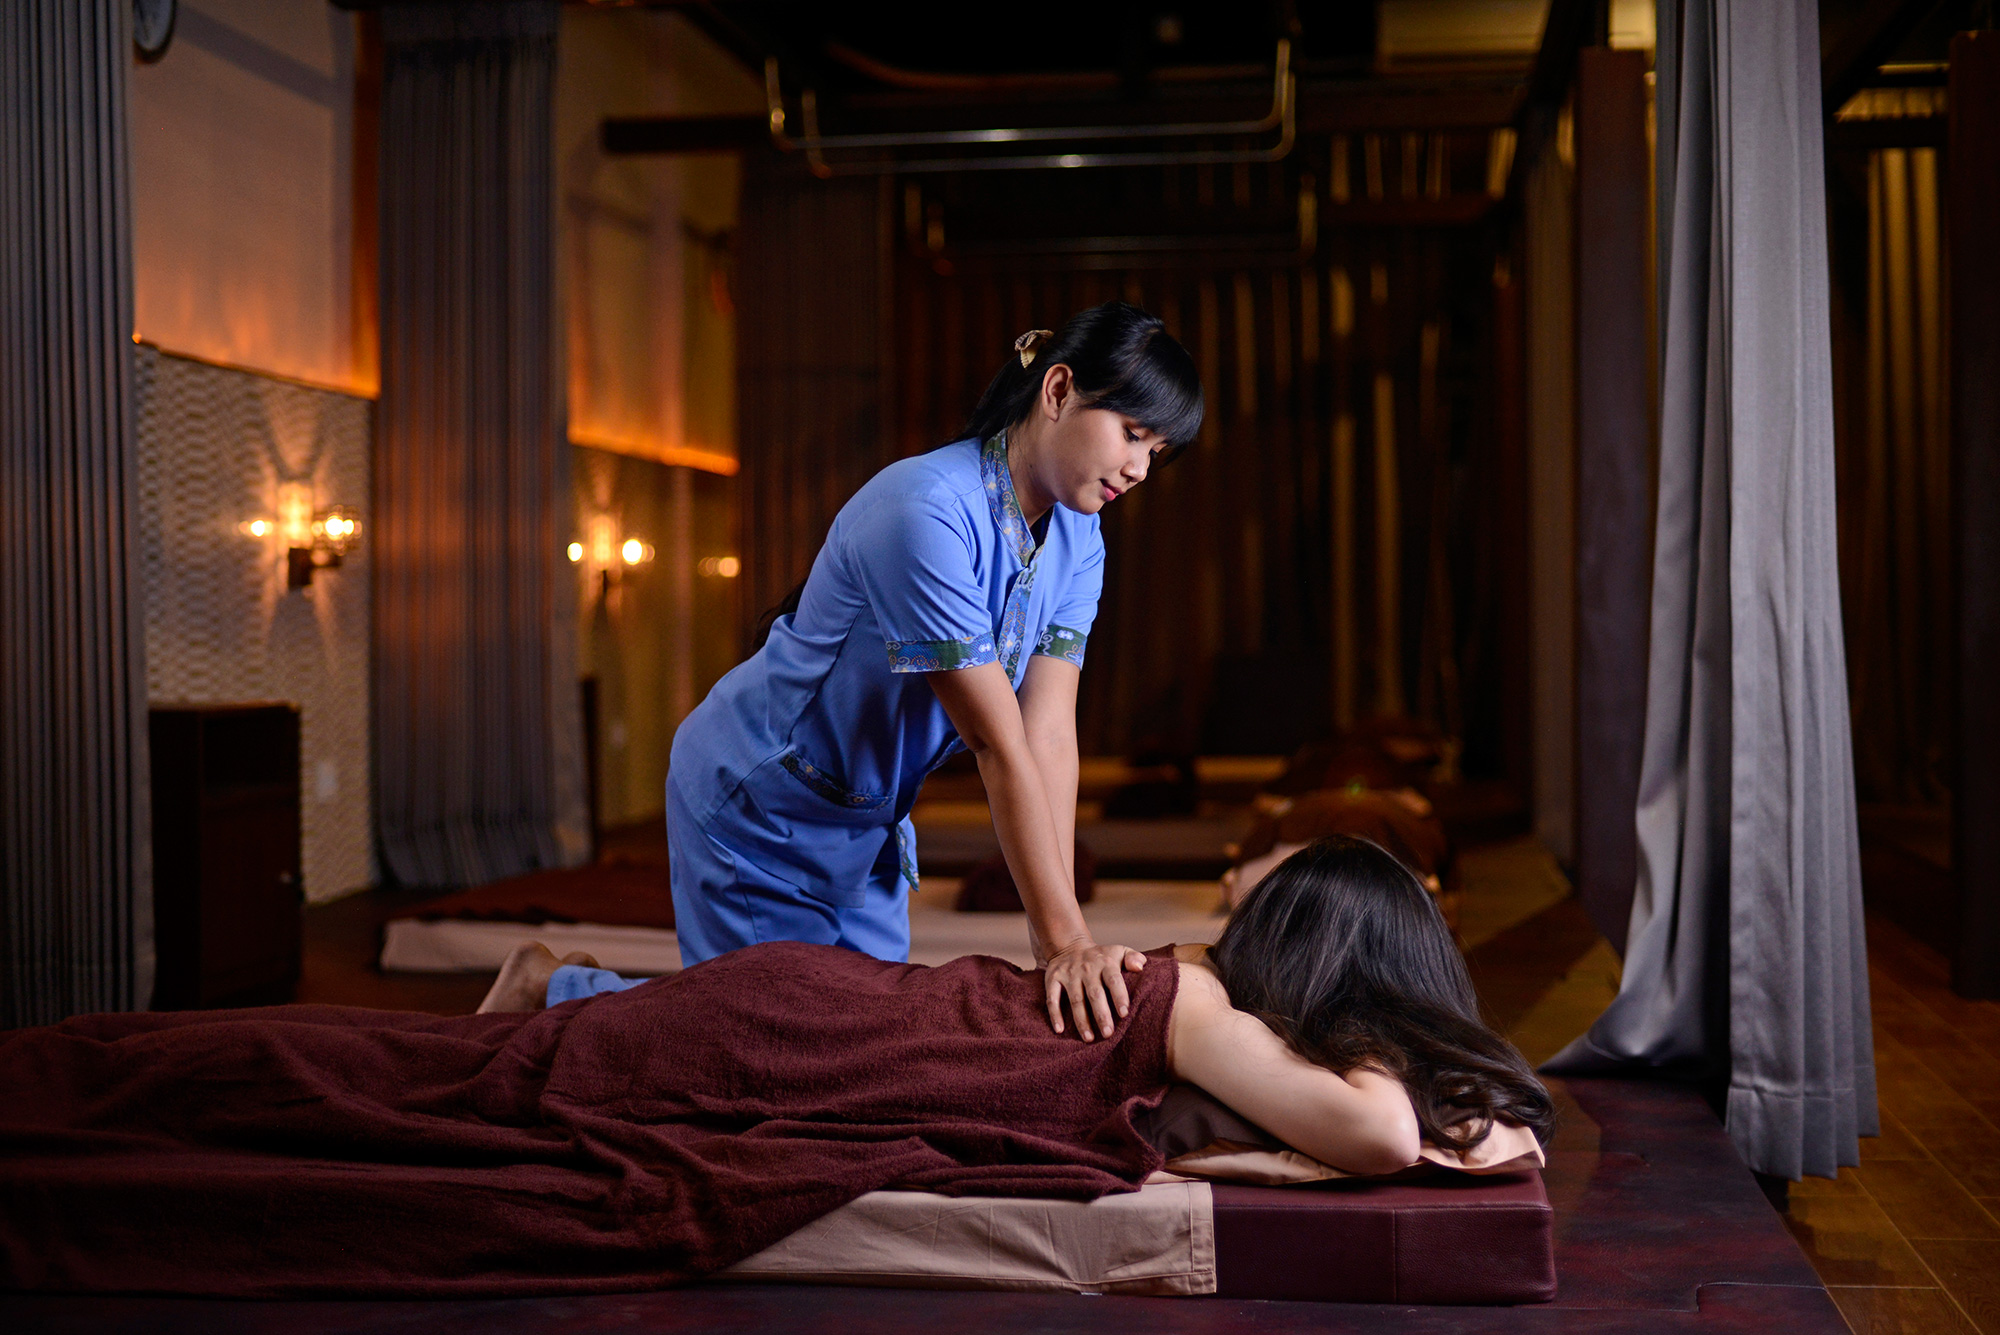 99 Reflexology Surabaya Profile Photography - Chendra Cahyadi photography took the profile photography of 99 Reflexology at Surabaya. 99 Reflexology Surabaya is Family spa places offer a variety of massages with experienced therapists.